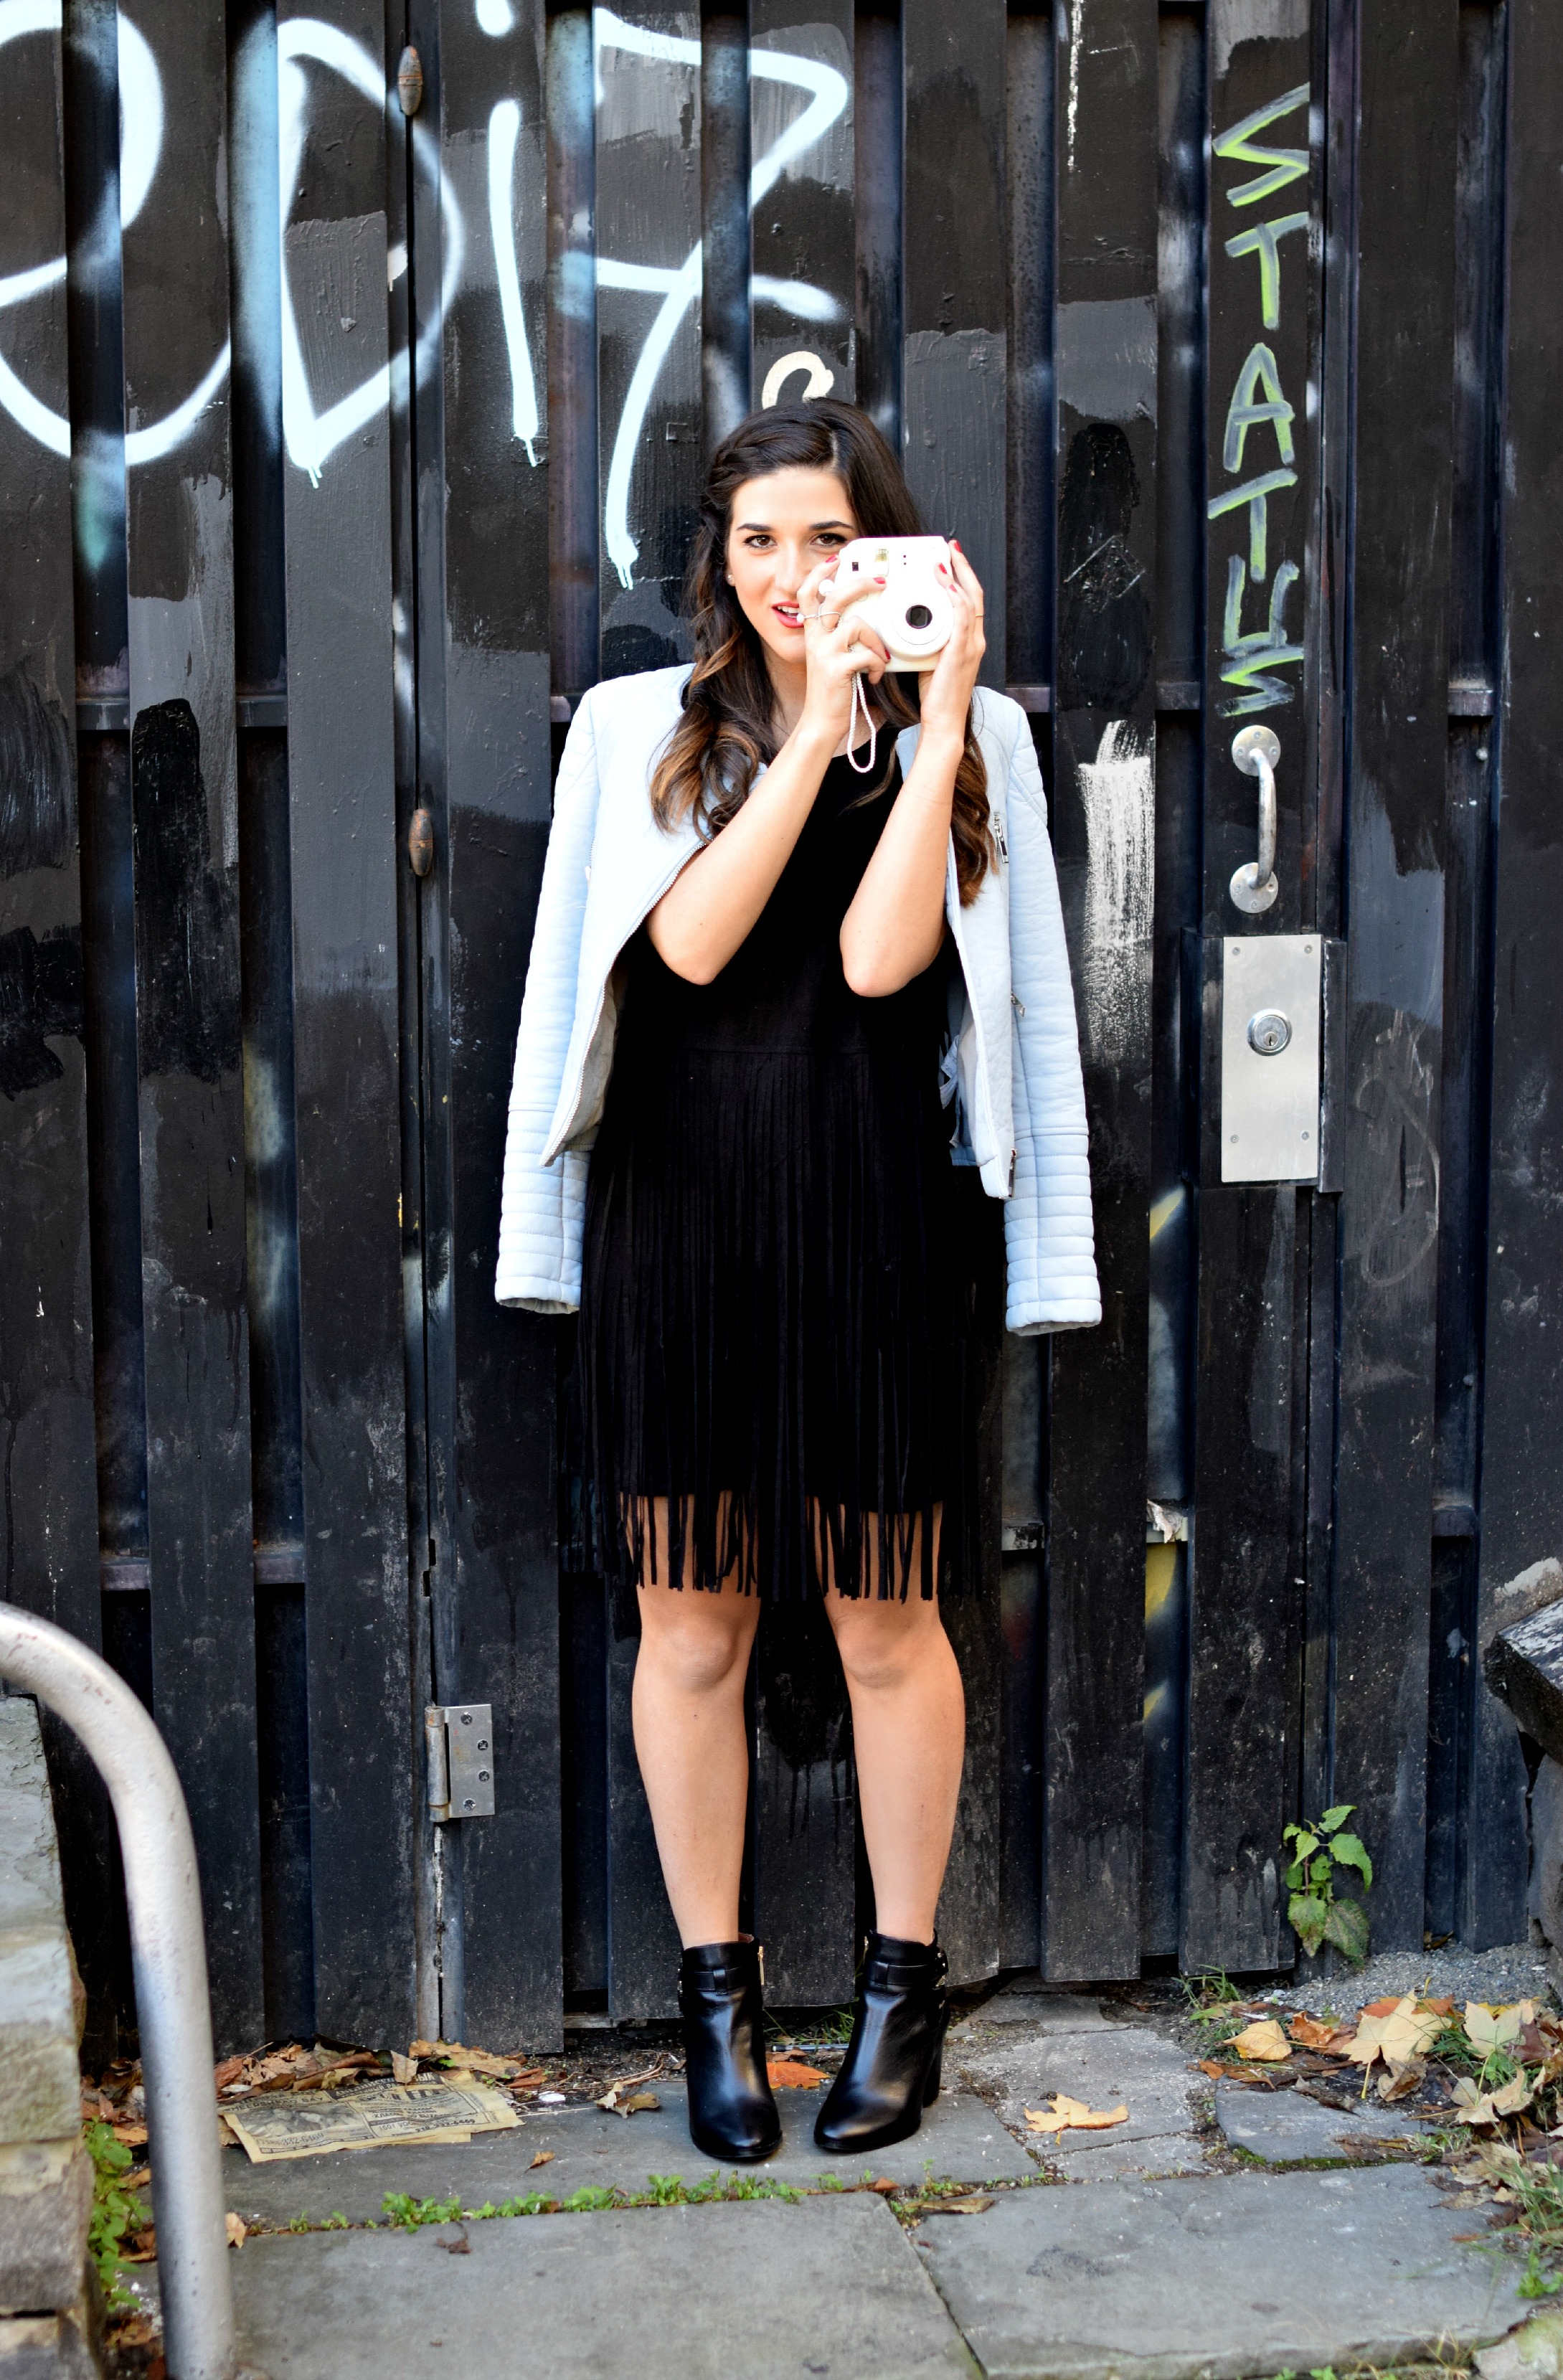 Black Fringe Dress Trèscool Louboutins & Love Fashion Blog Esther Santer NYC Street Style Blogger Baby Blue Leather Jacket Zara Hair Girl Model Photoshoot Booties Nordstrom Outfit OOTD Red Nail Polish Shop Fall Look Pretty Shoes Winter Trendy Inspo .jpg